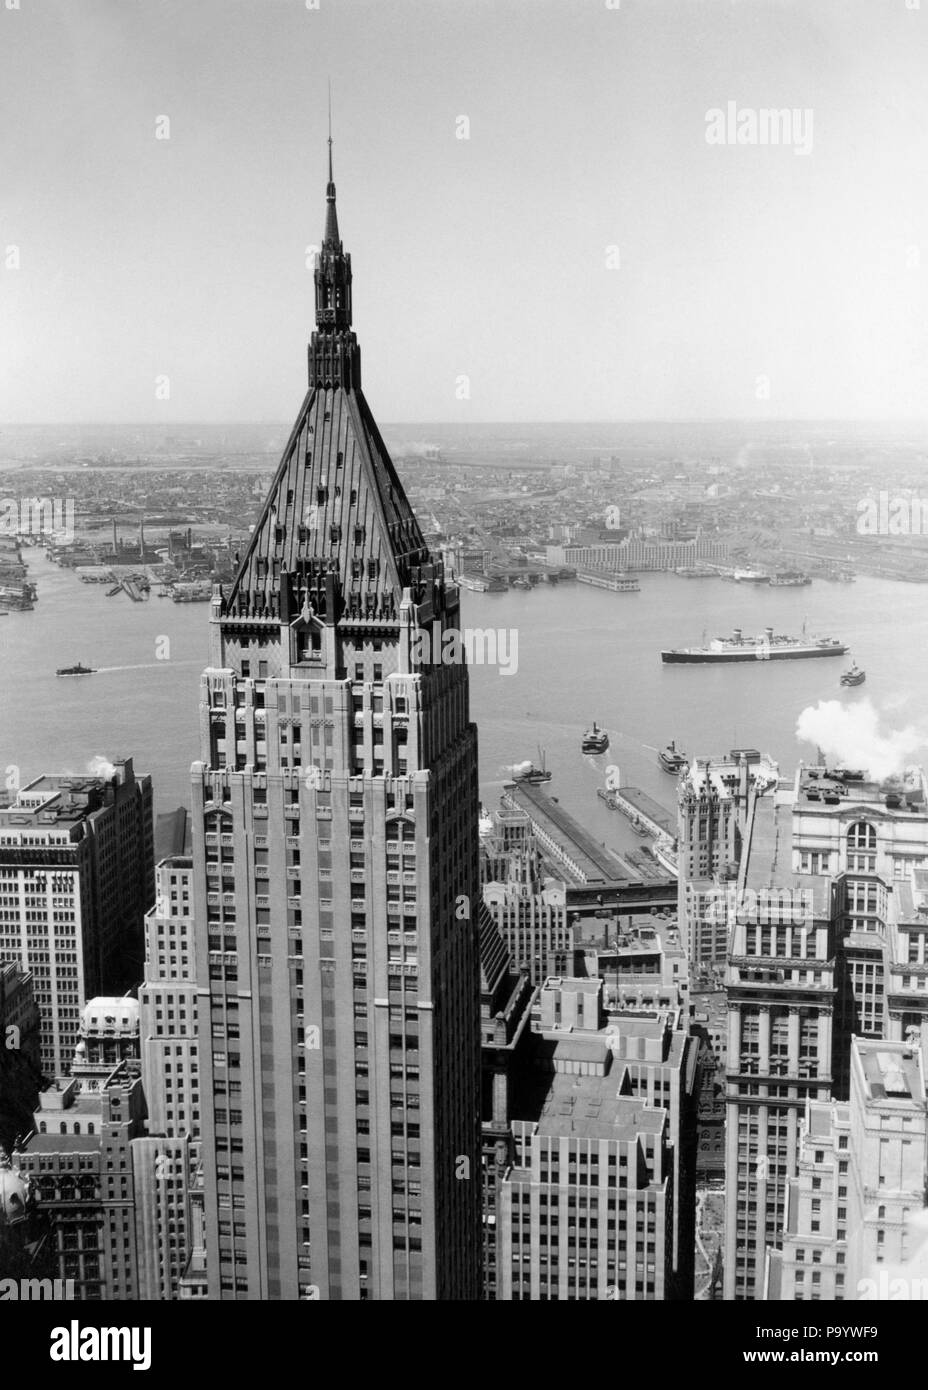 1930s NEO-GOTHIC BANK OF MANHATTAN TRUST BUILDING NOW THE TRUMP BUILDING 40 WALL STREET & VIEW OF HUDSON RIVER NEW YORK CITY USA - r978 HAR001 HARS SPIRE - Stock Image